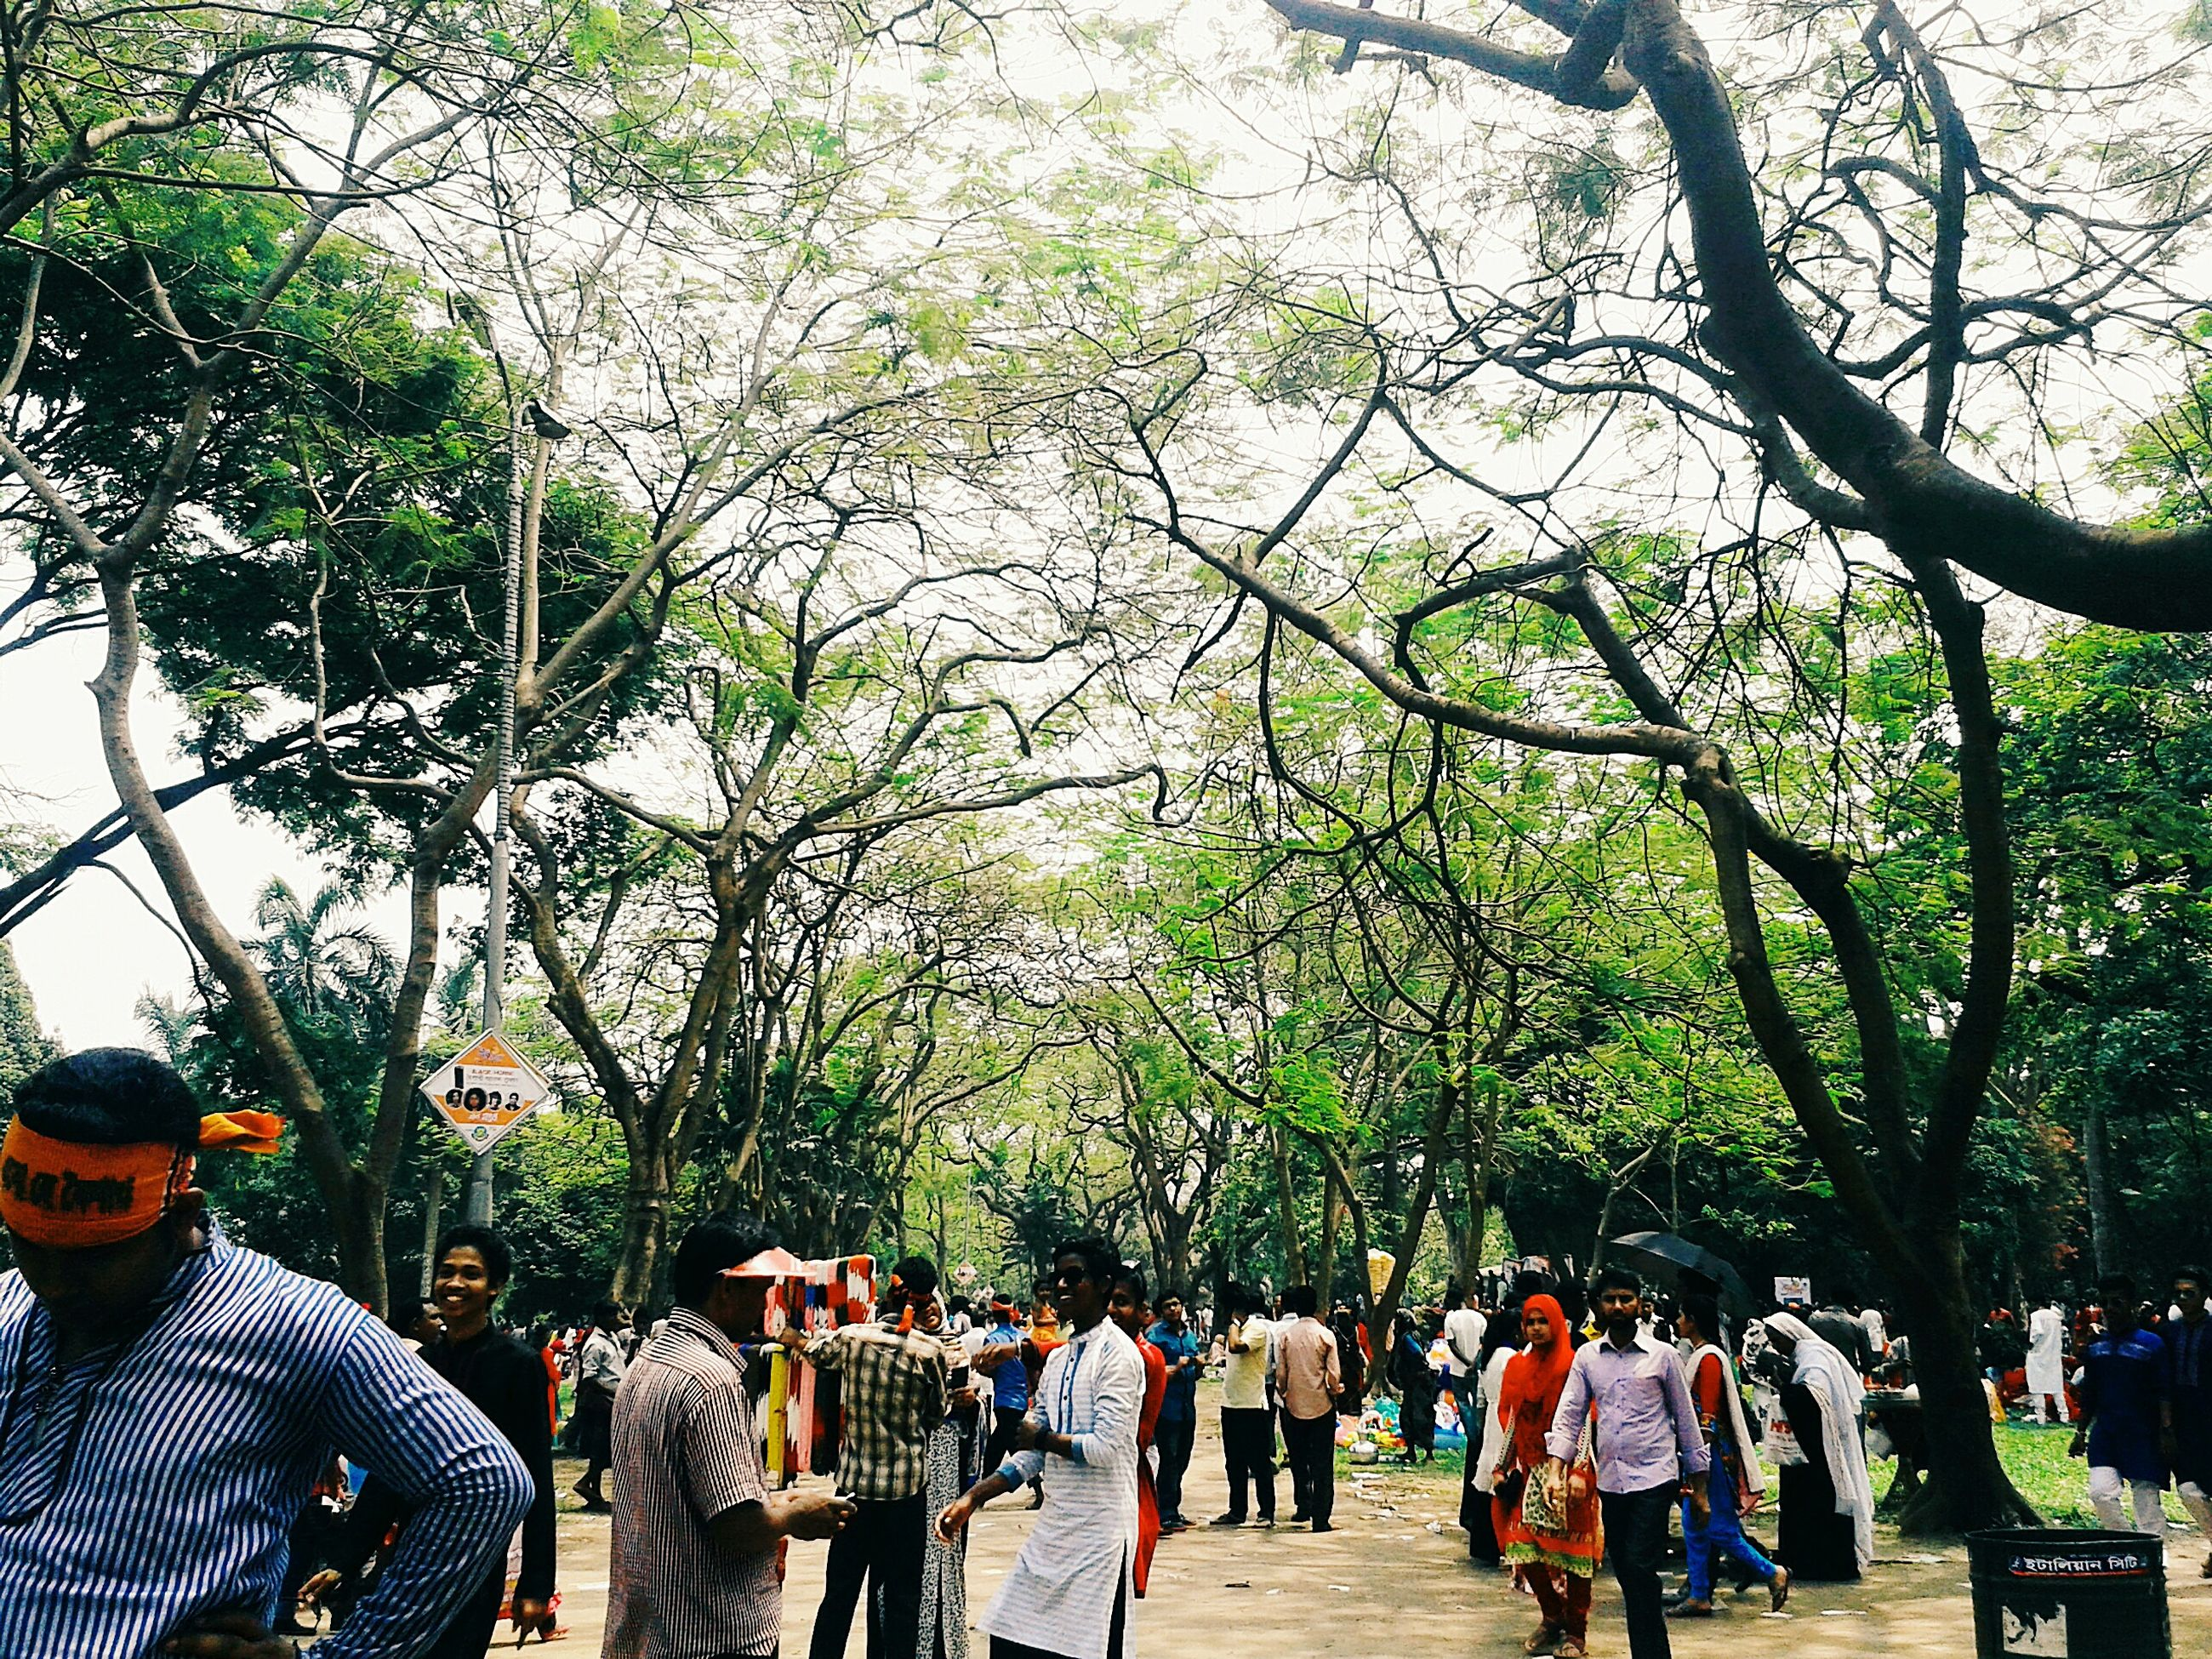 tree, men, lifestyles, large group of people, person, leisure activity, walking, growth, mixed age range, togetherness, nature, park - man made space, rear view, day, green color, outdoors, footpath, casual clothing, medium group of people